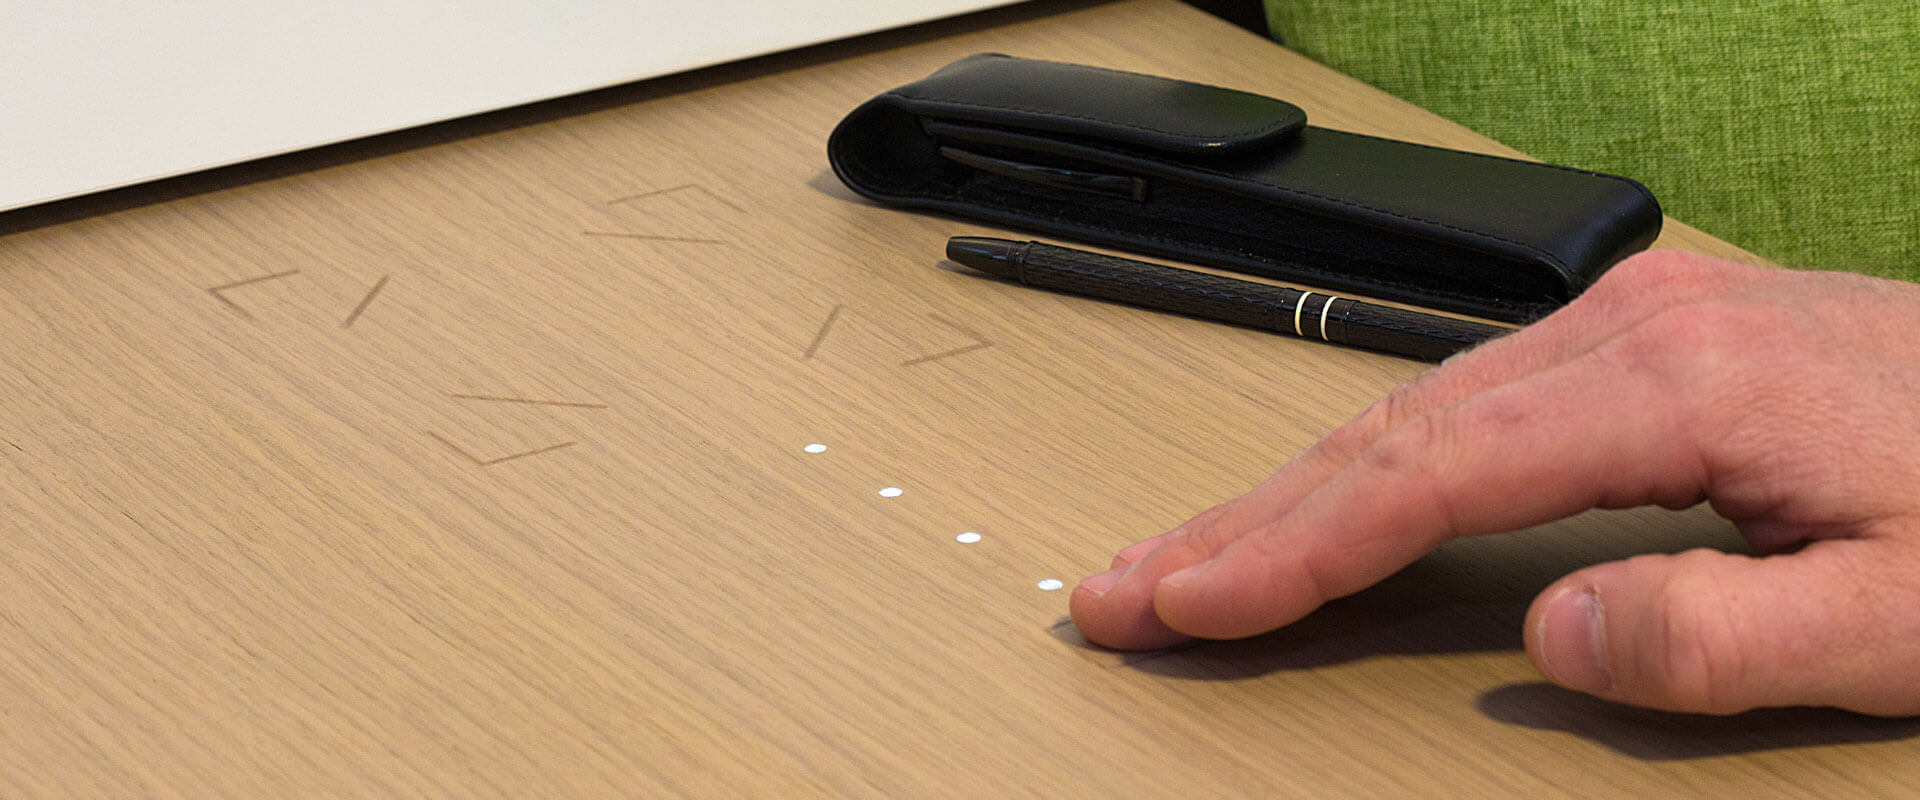 loxone-touch-surface-photo1@2k.jpg